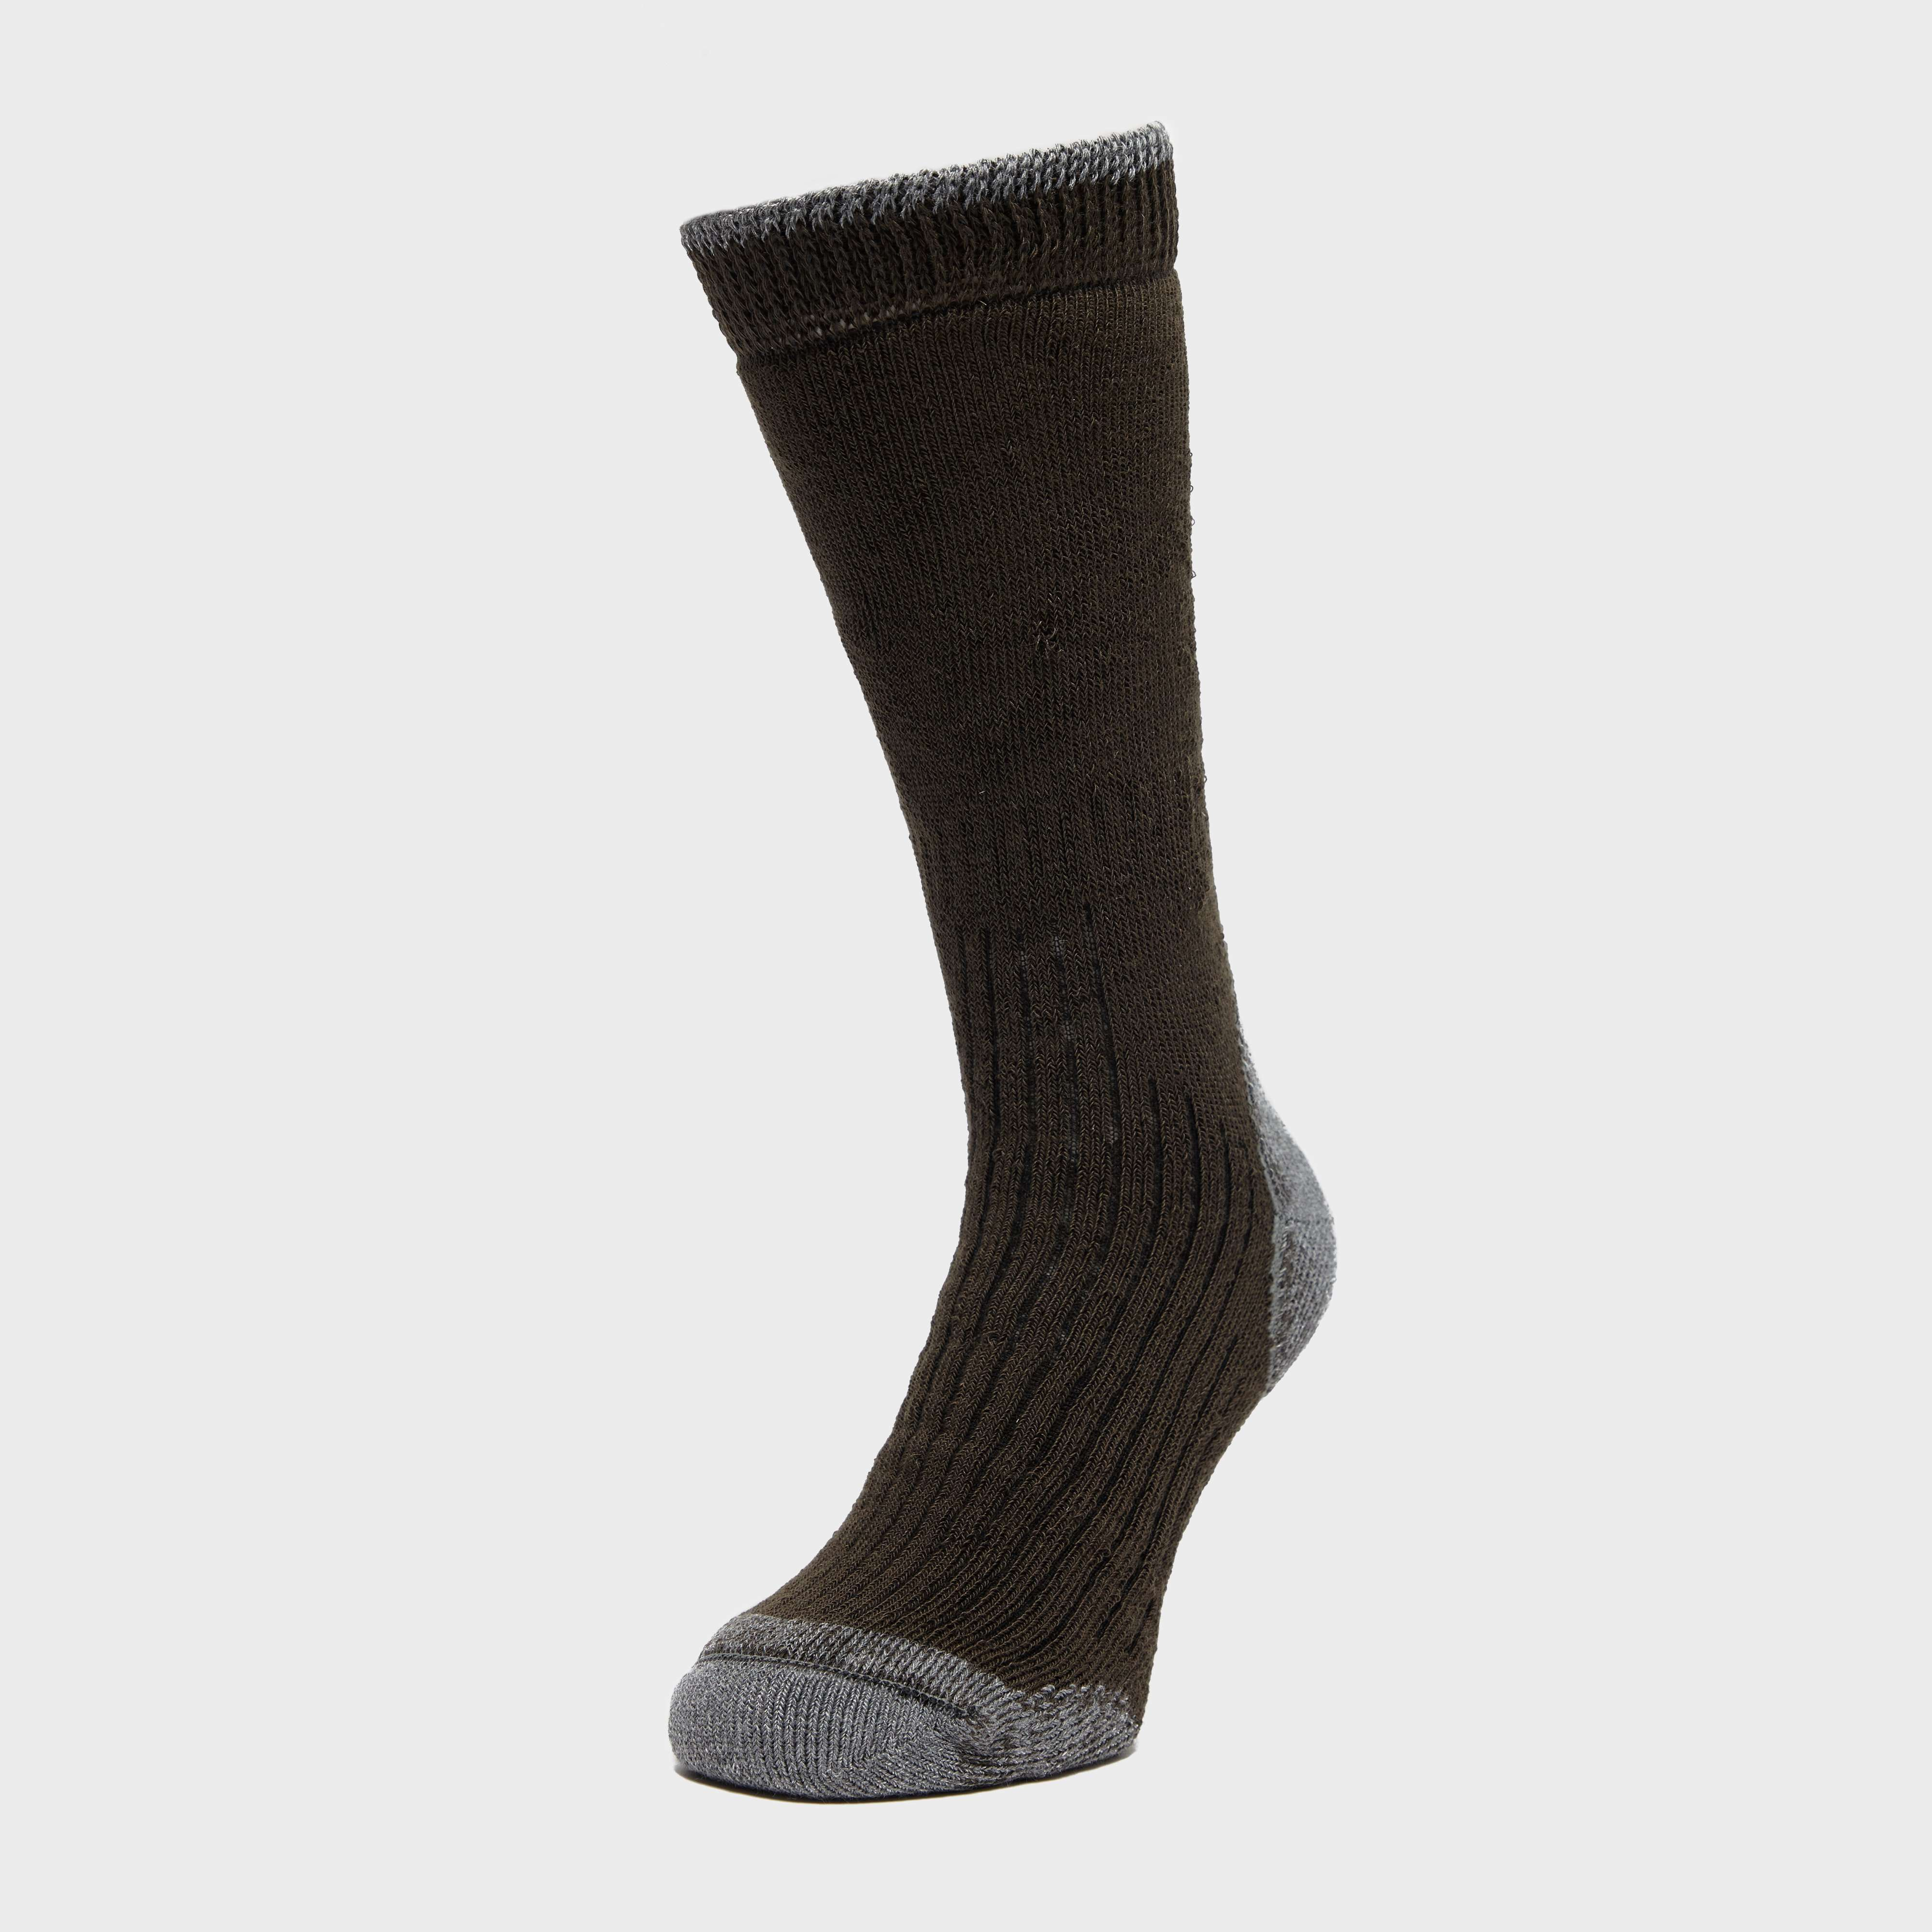 BRASHER Men's Hiker Socks